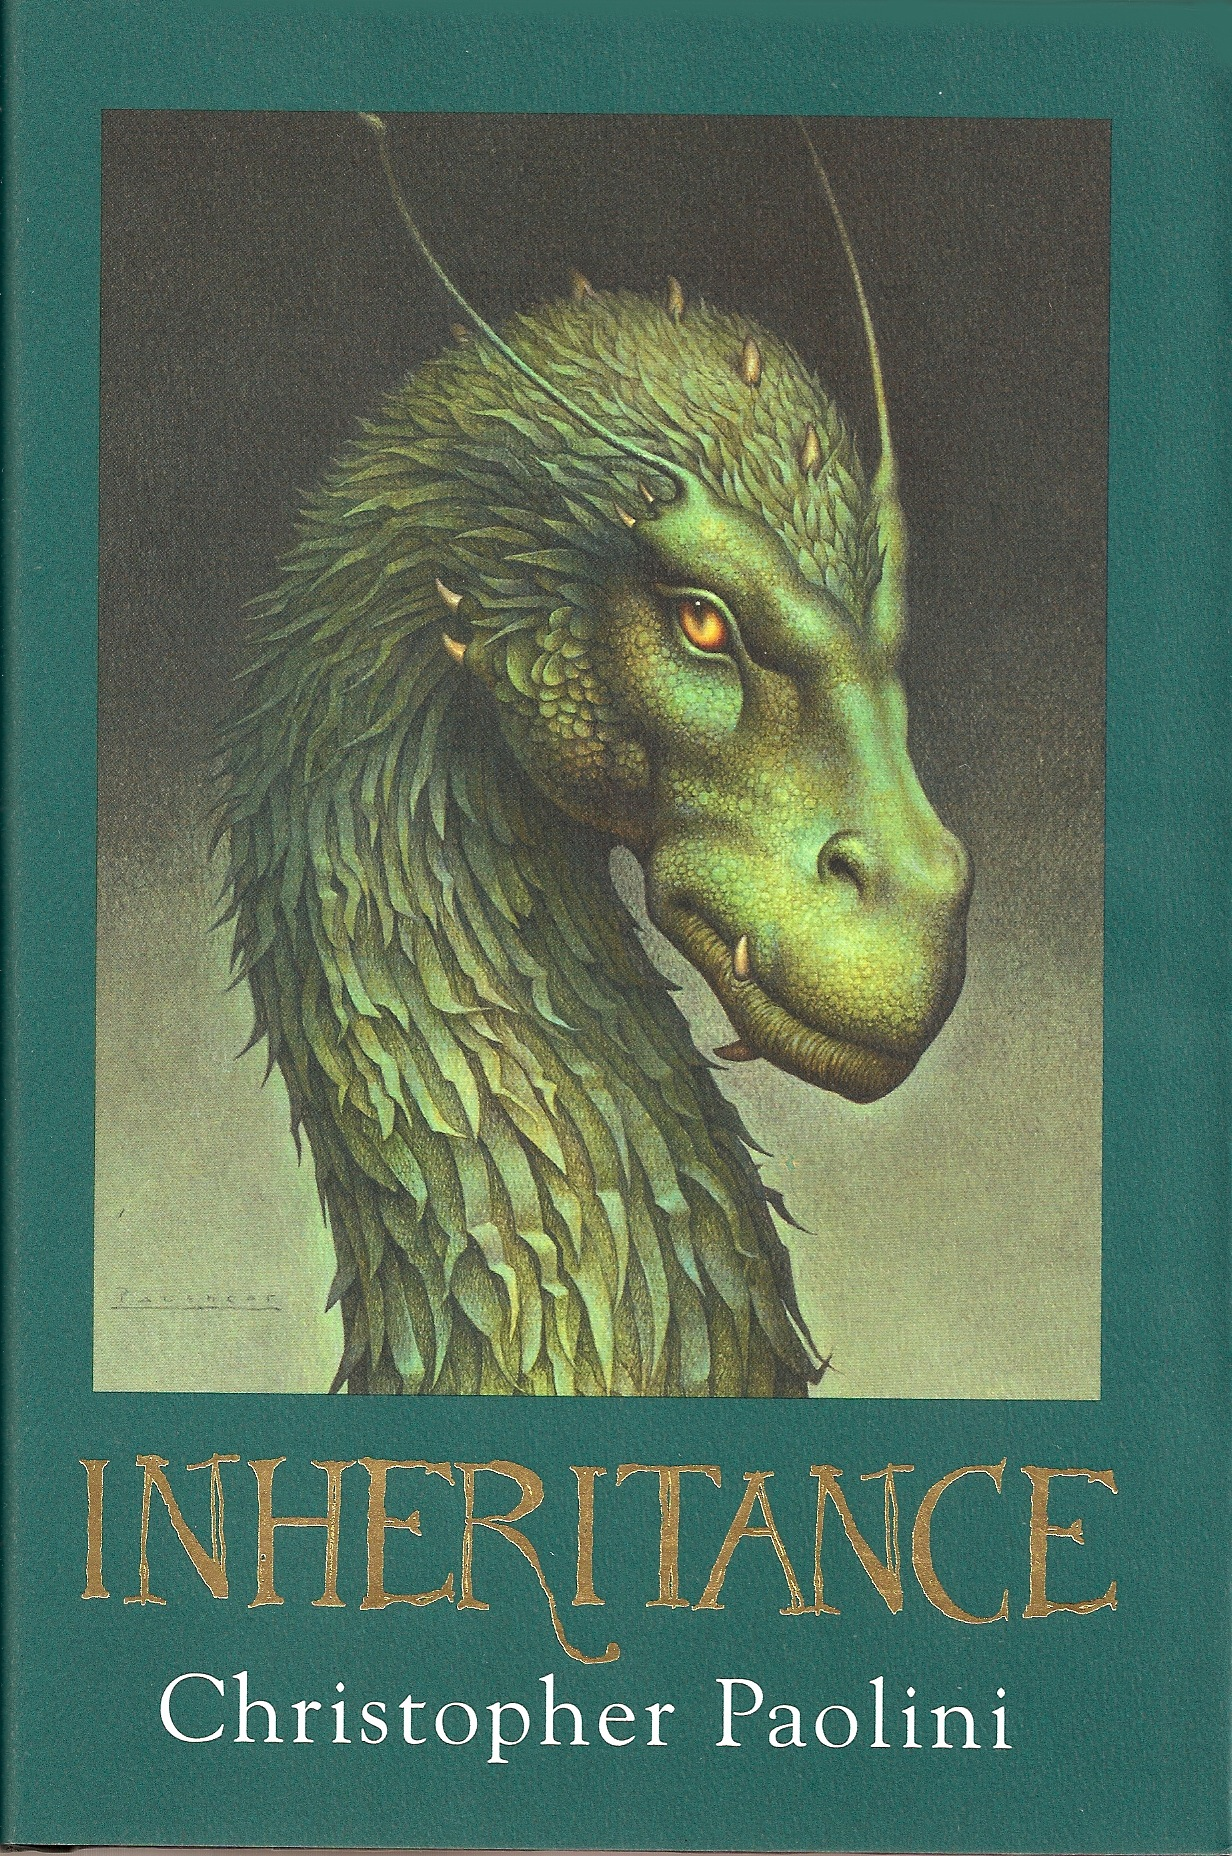 the inheritance david sanger book review